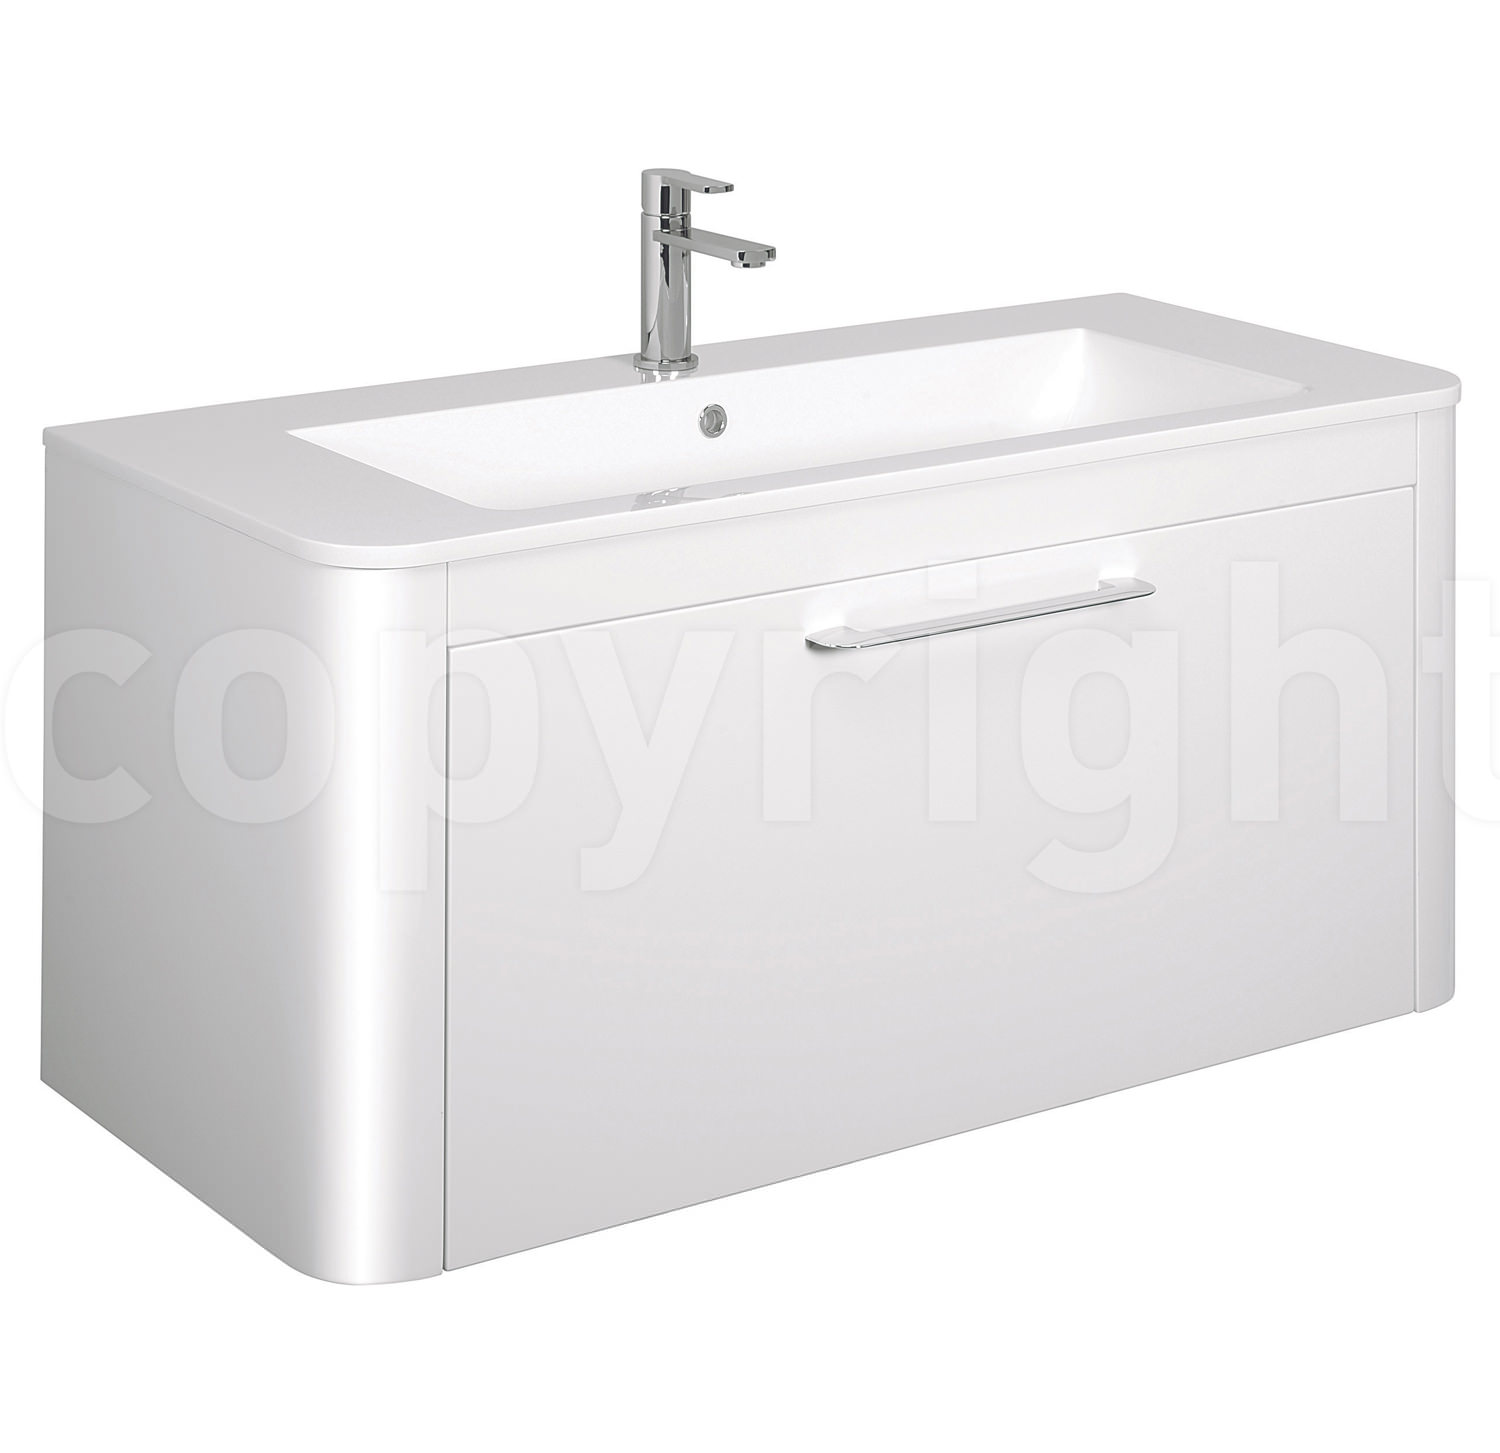 how to install tile in bathroom bauhaus celeste 1100mm white gloss single drawer unit 25429